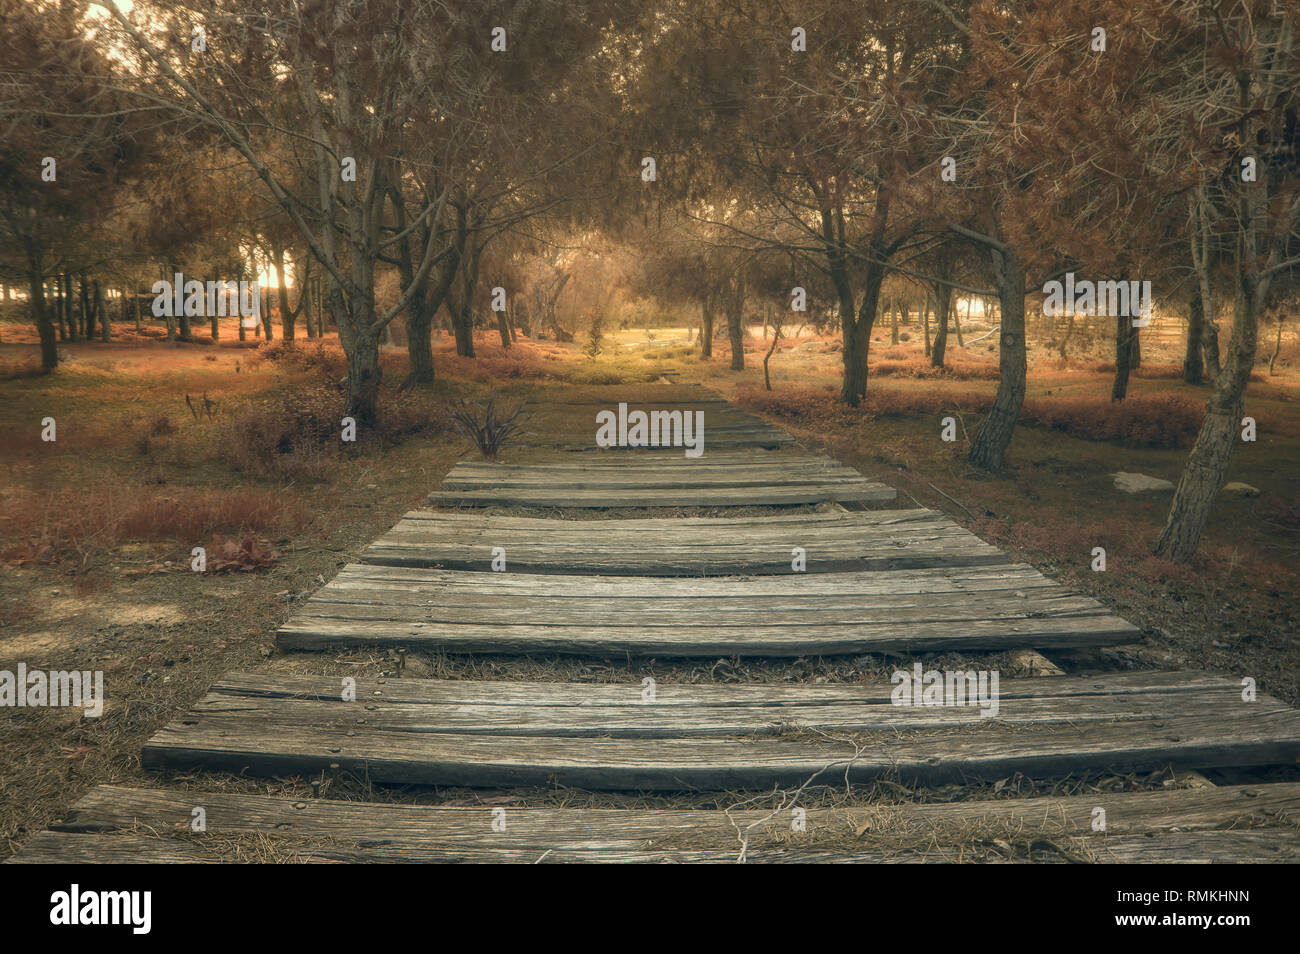 Forrest path - Stock Image